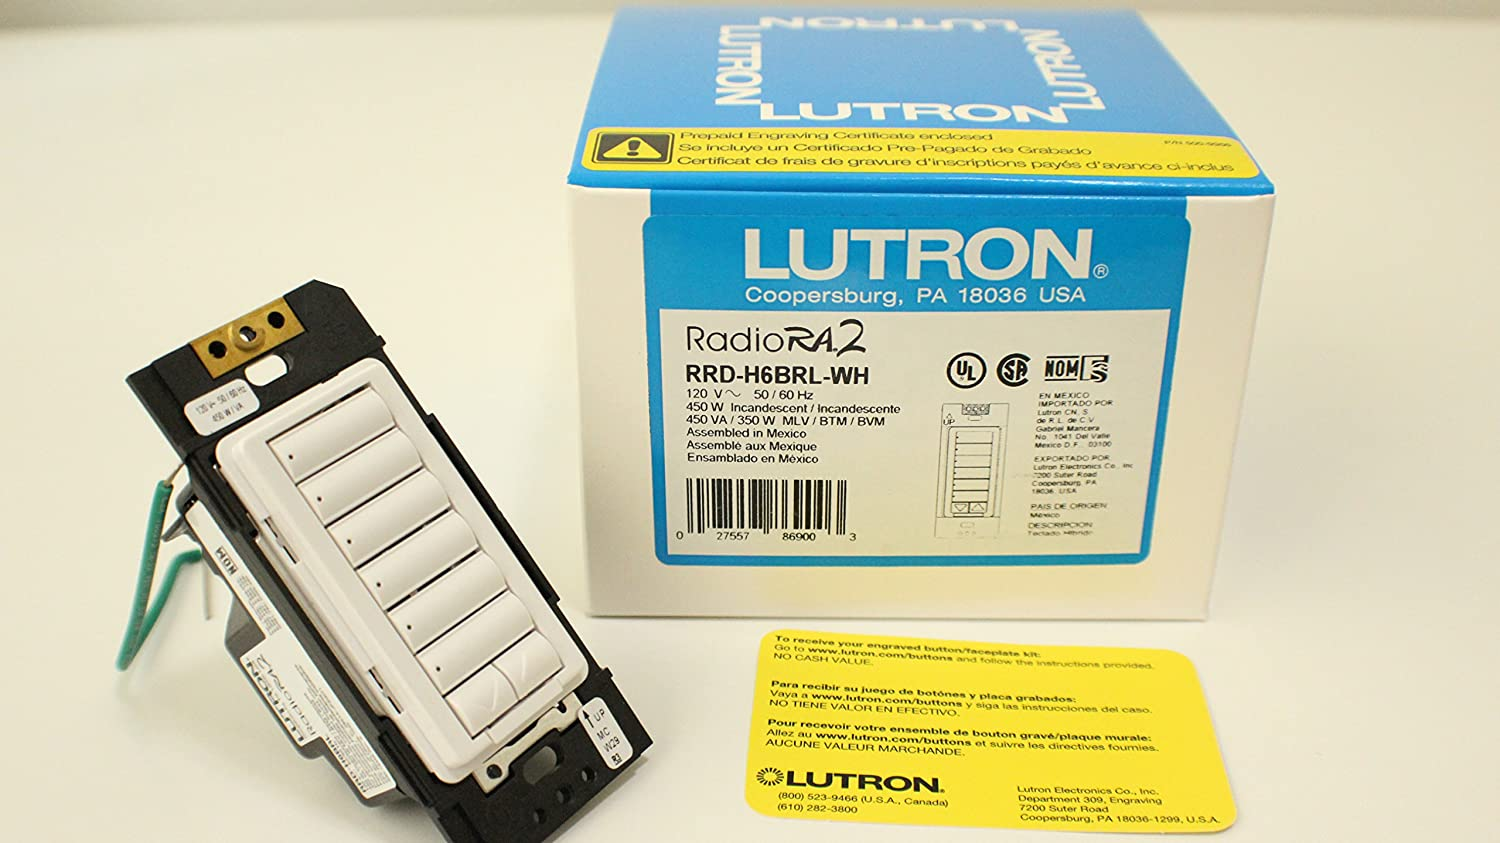 Amazon.com : Lutron RRD-H6BRL-WH Radiora2 Neutral Wire Dimmer Hybrid Keypad 120 Volt AC White : Electrical Switches : Electronics